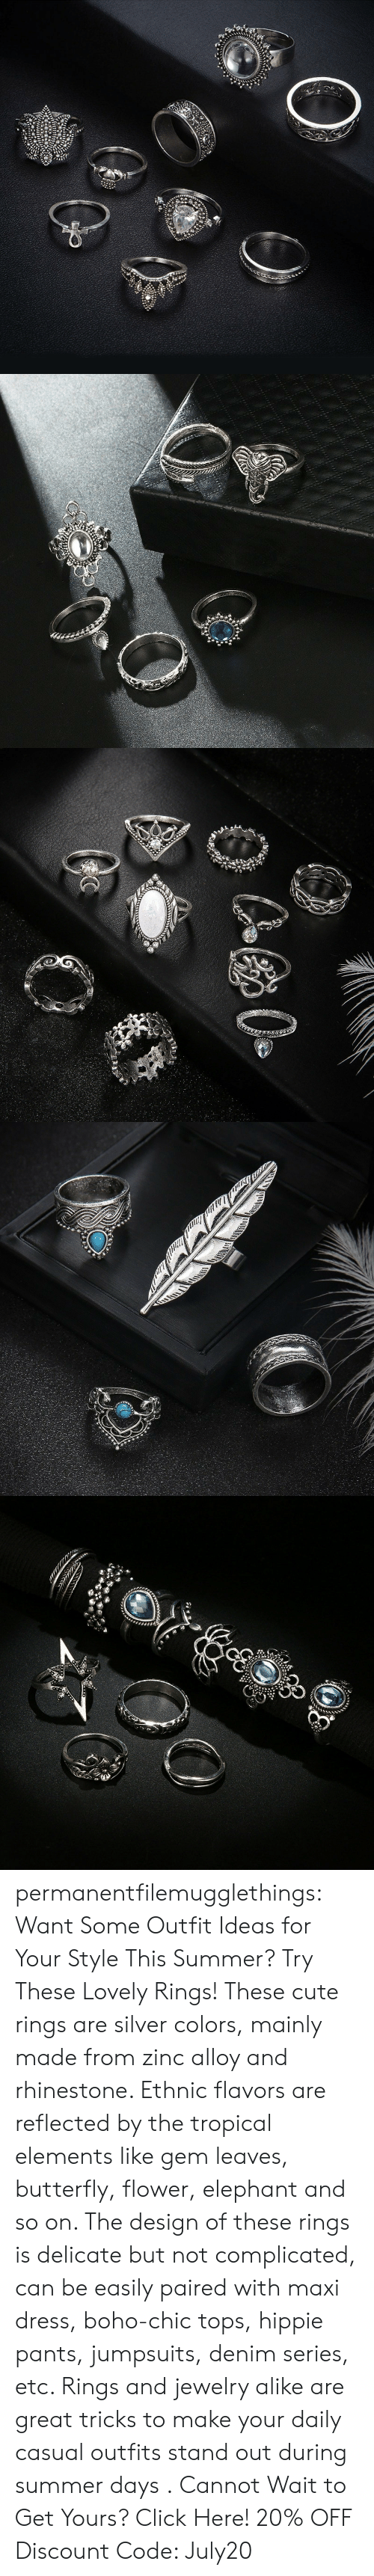 Butterfly: permanentfilemugglethings: Want Some Outfit Ideas for Your Style This Summer? Try These Lovely Rings! These cute rings are silver colors, mainly made from zinc alloy and rhinestone. Ethnic flavors are reflected by the tropical elements like gem leaves, butterfly, flower, elephant and so on. The design of these rings is delicate but not complicated, can be easily paired with maxi dress, boho-chic tops, hippie pants, jumpsuits, denim series, etc. Rings and jewelry alike are great tricks to make your daily casual outfits stand out during summer days . Cannot Wait to Get Yours? Click Here! 20% OFF Discount Code: July20